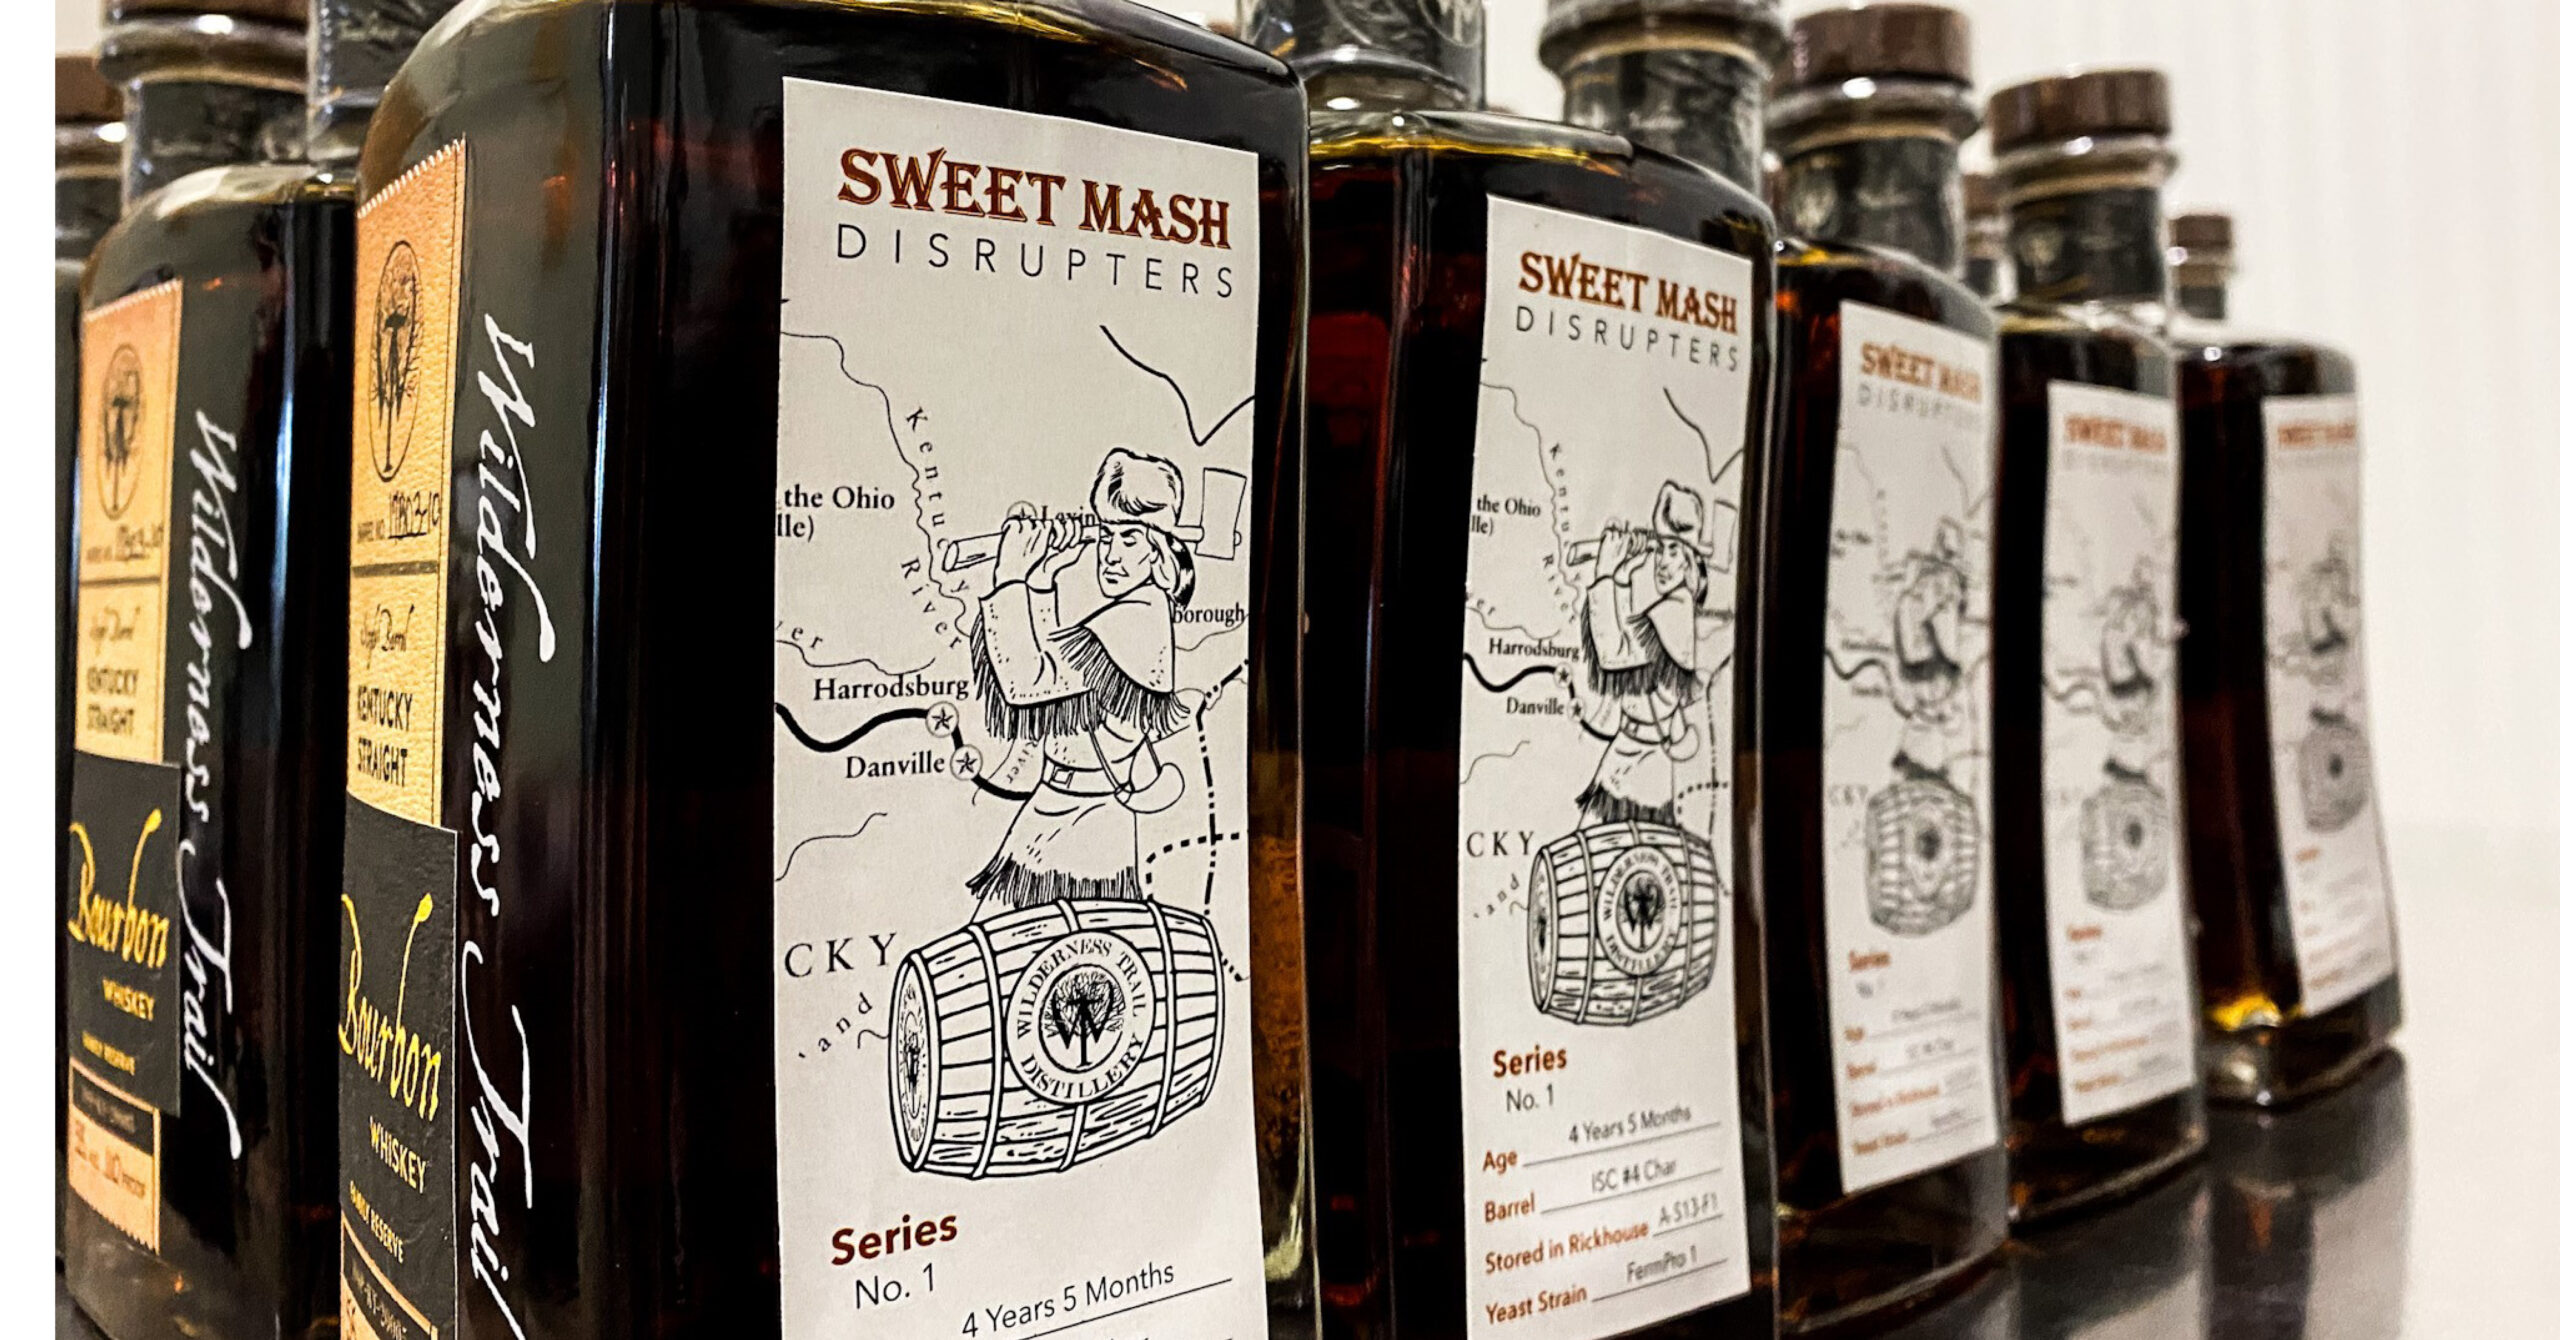 A special barrel pick is available to Wilderness Trail Kentucky Bourbon Trail visitors.